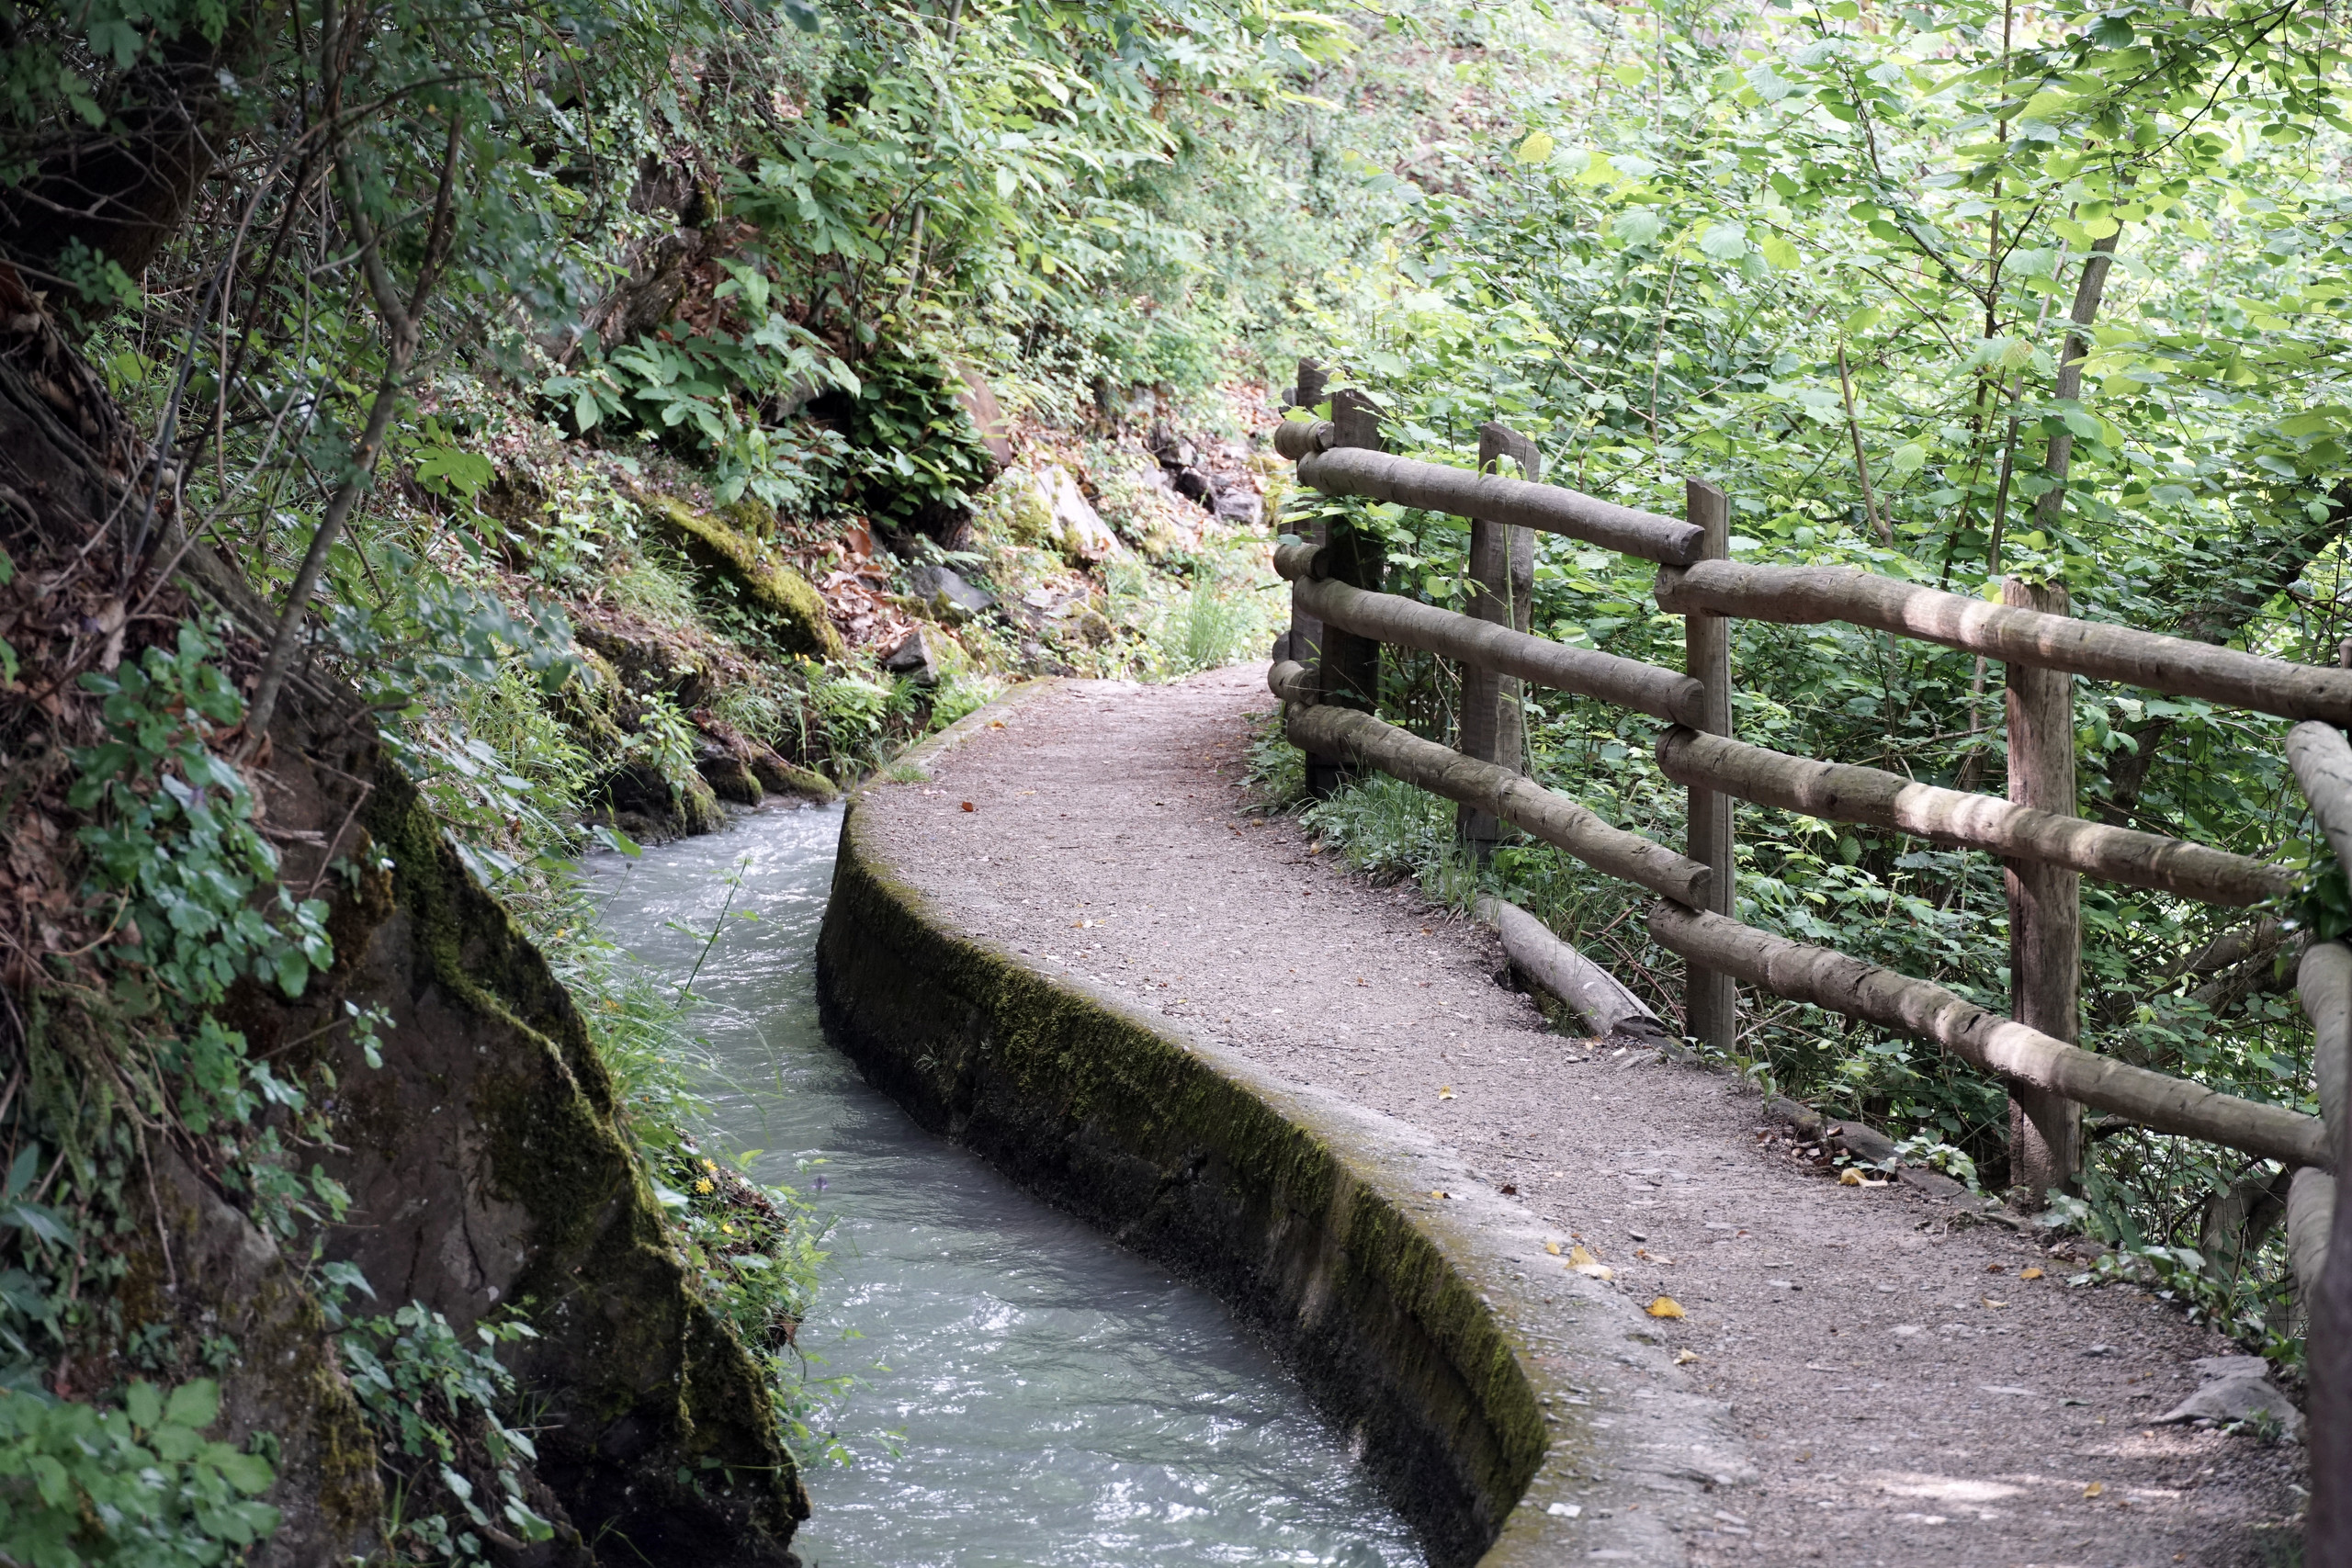 Marling pathway, nature, relax...recharging batteries by, only, breathing that fresh air